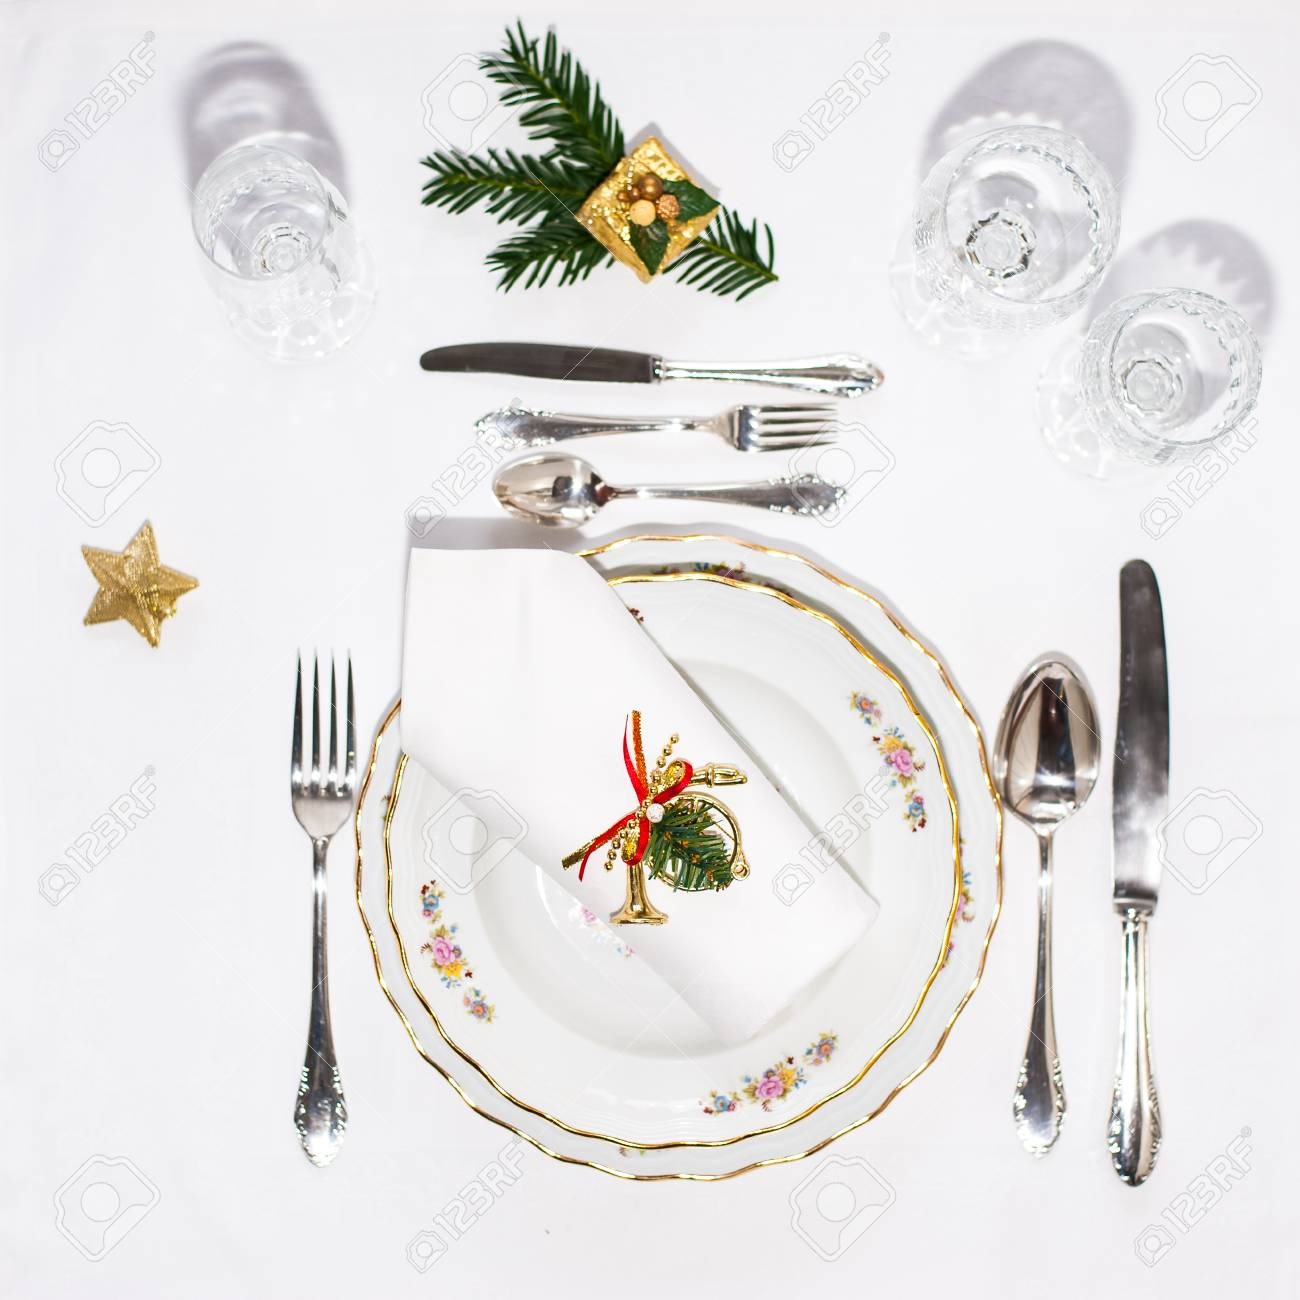 Christmas Plate Set.Christmas Dinner Set Porcelain Plates Silver Cutery And White